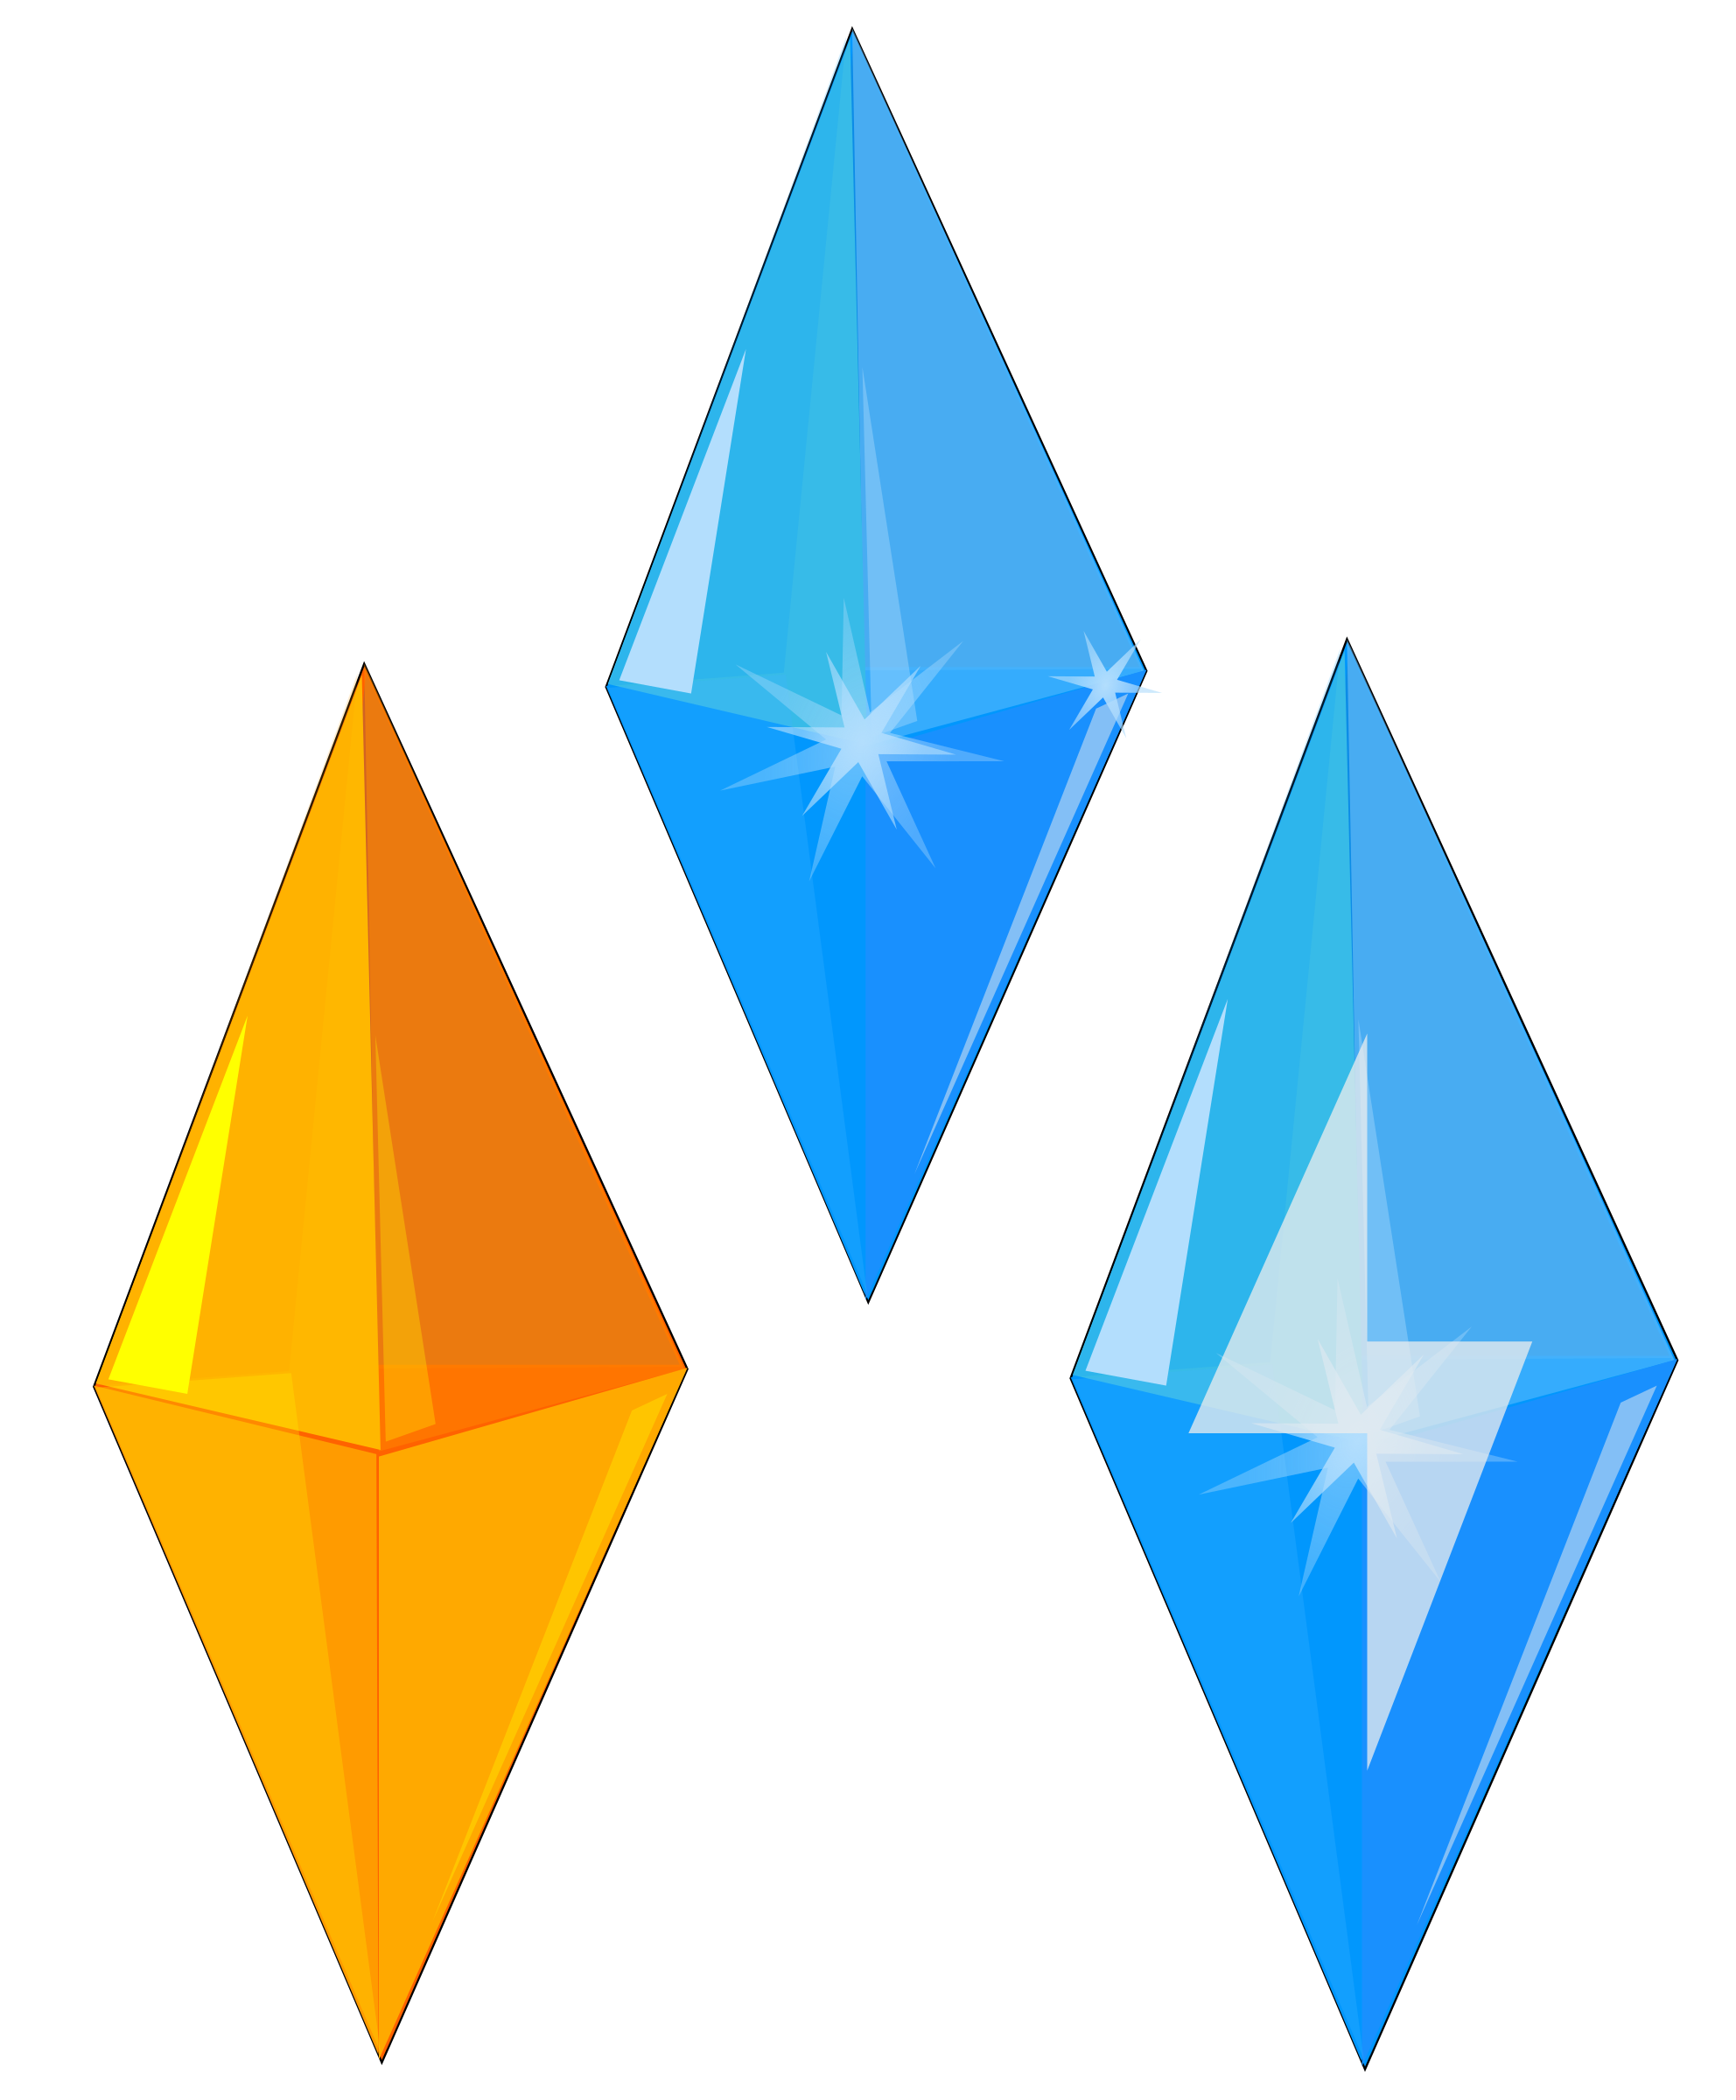 Crystal gems - Glittering Blue & Yellow precious gems by monsterbraingames